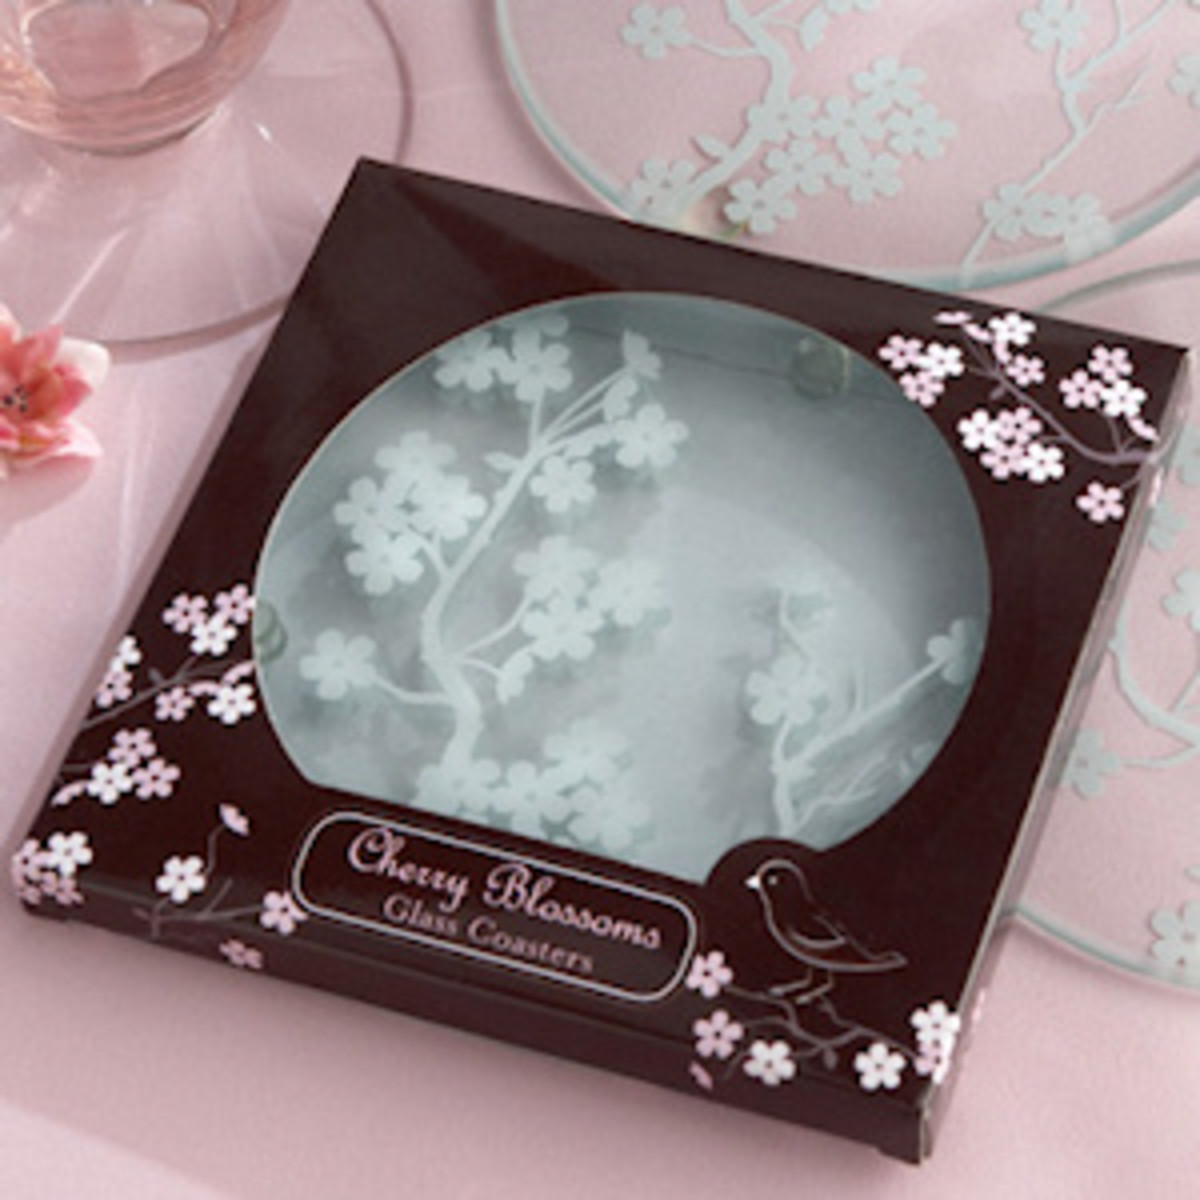 Frosted glass coasters with chocolate and pink cherry blossom packaging.